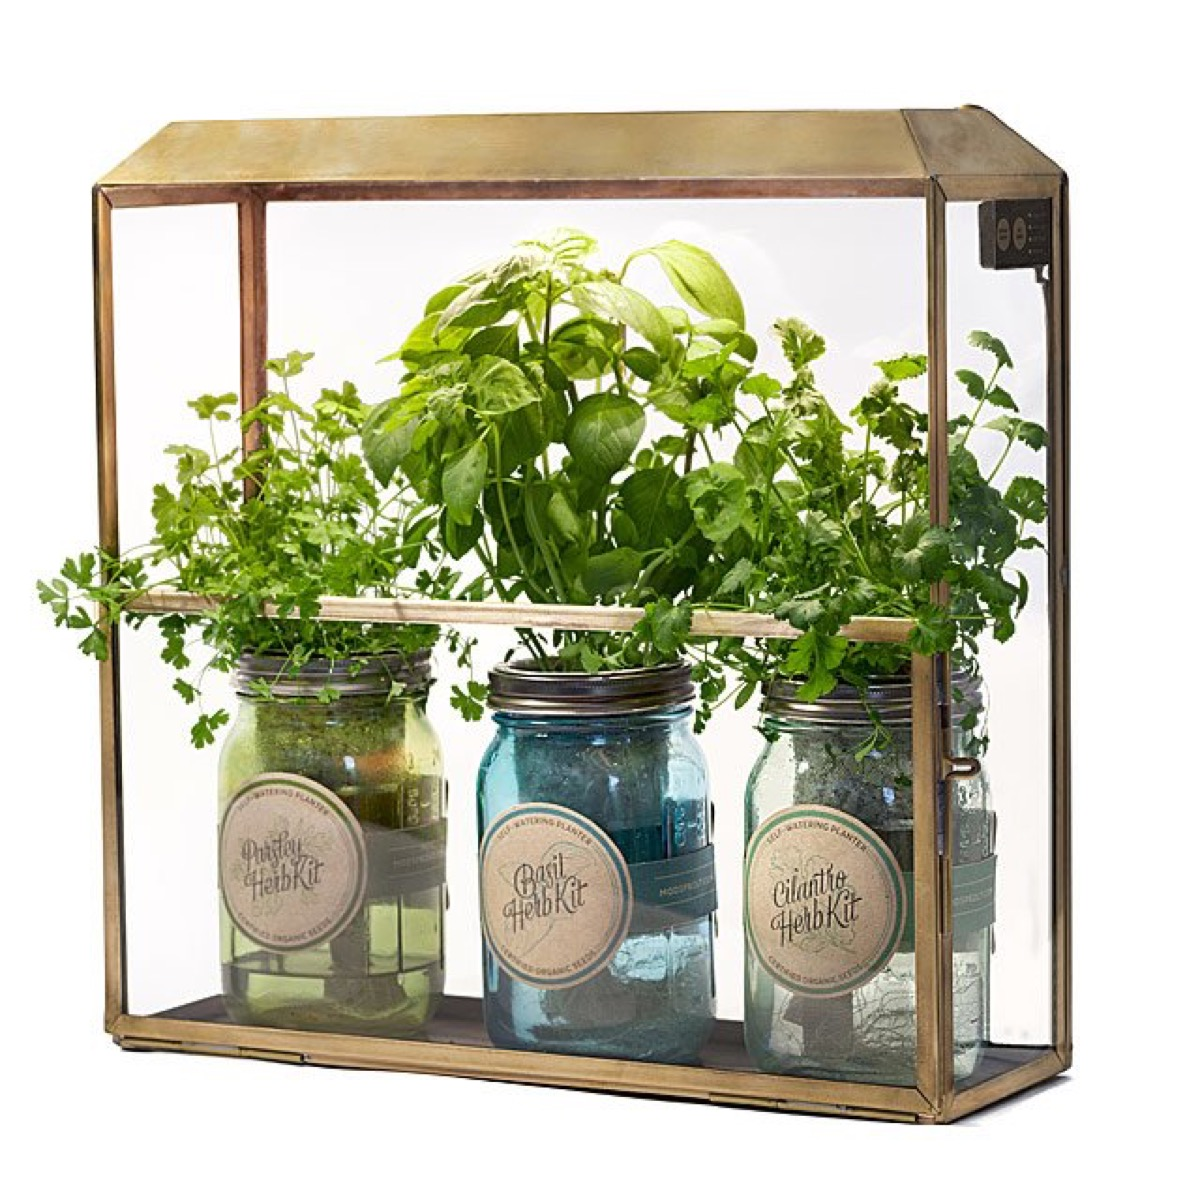 plants in wall mounted grow house